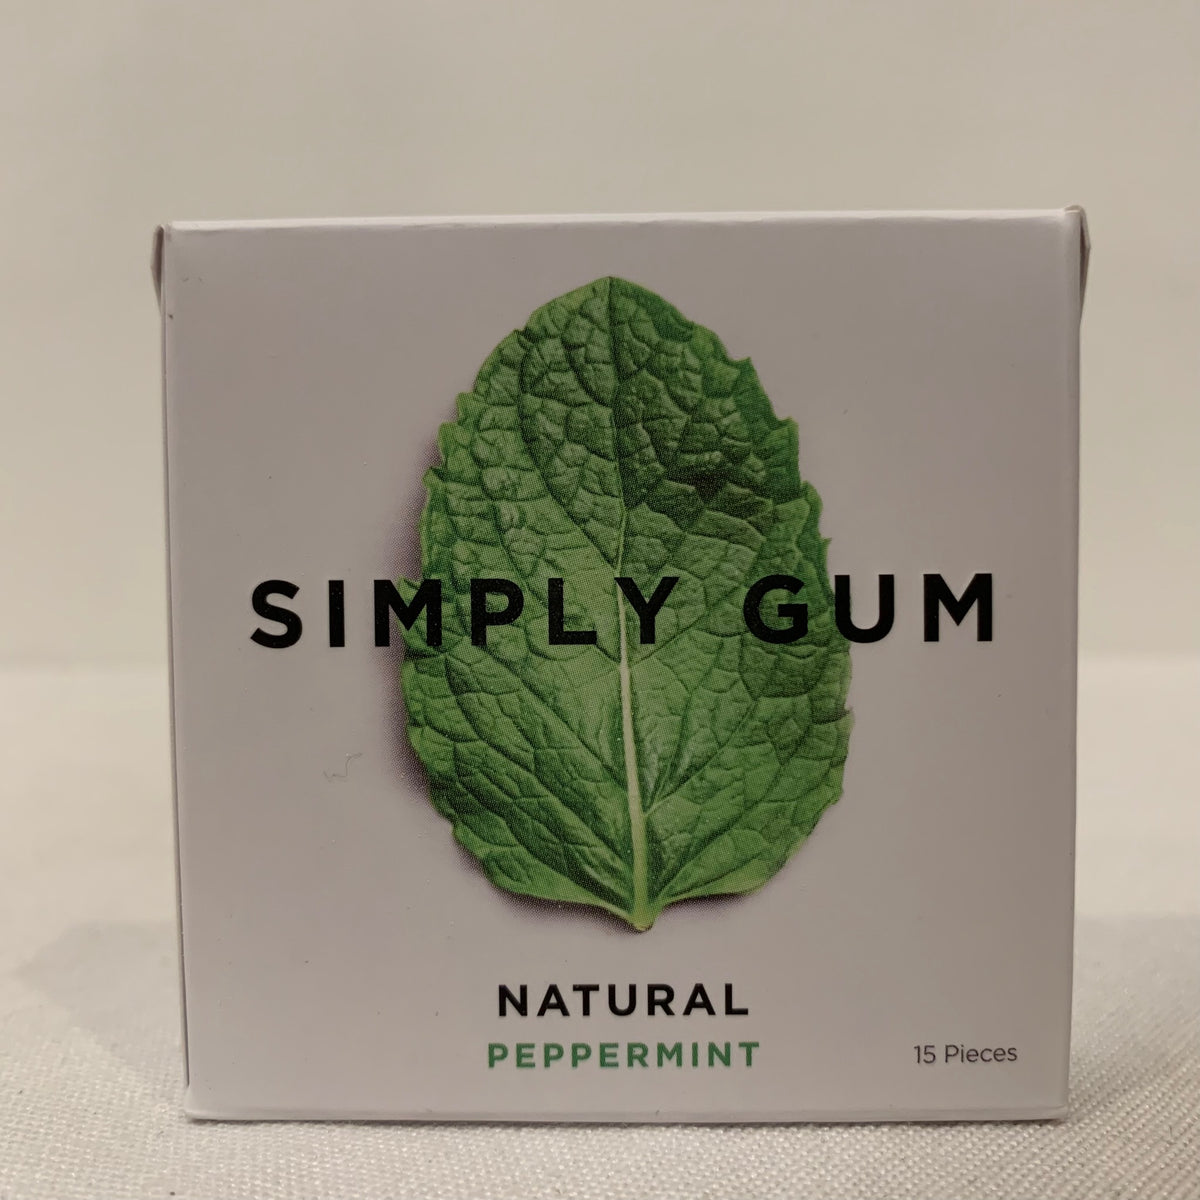 Simply Gum Peppermint